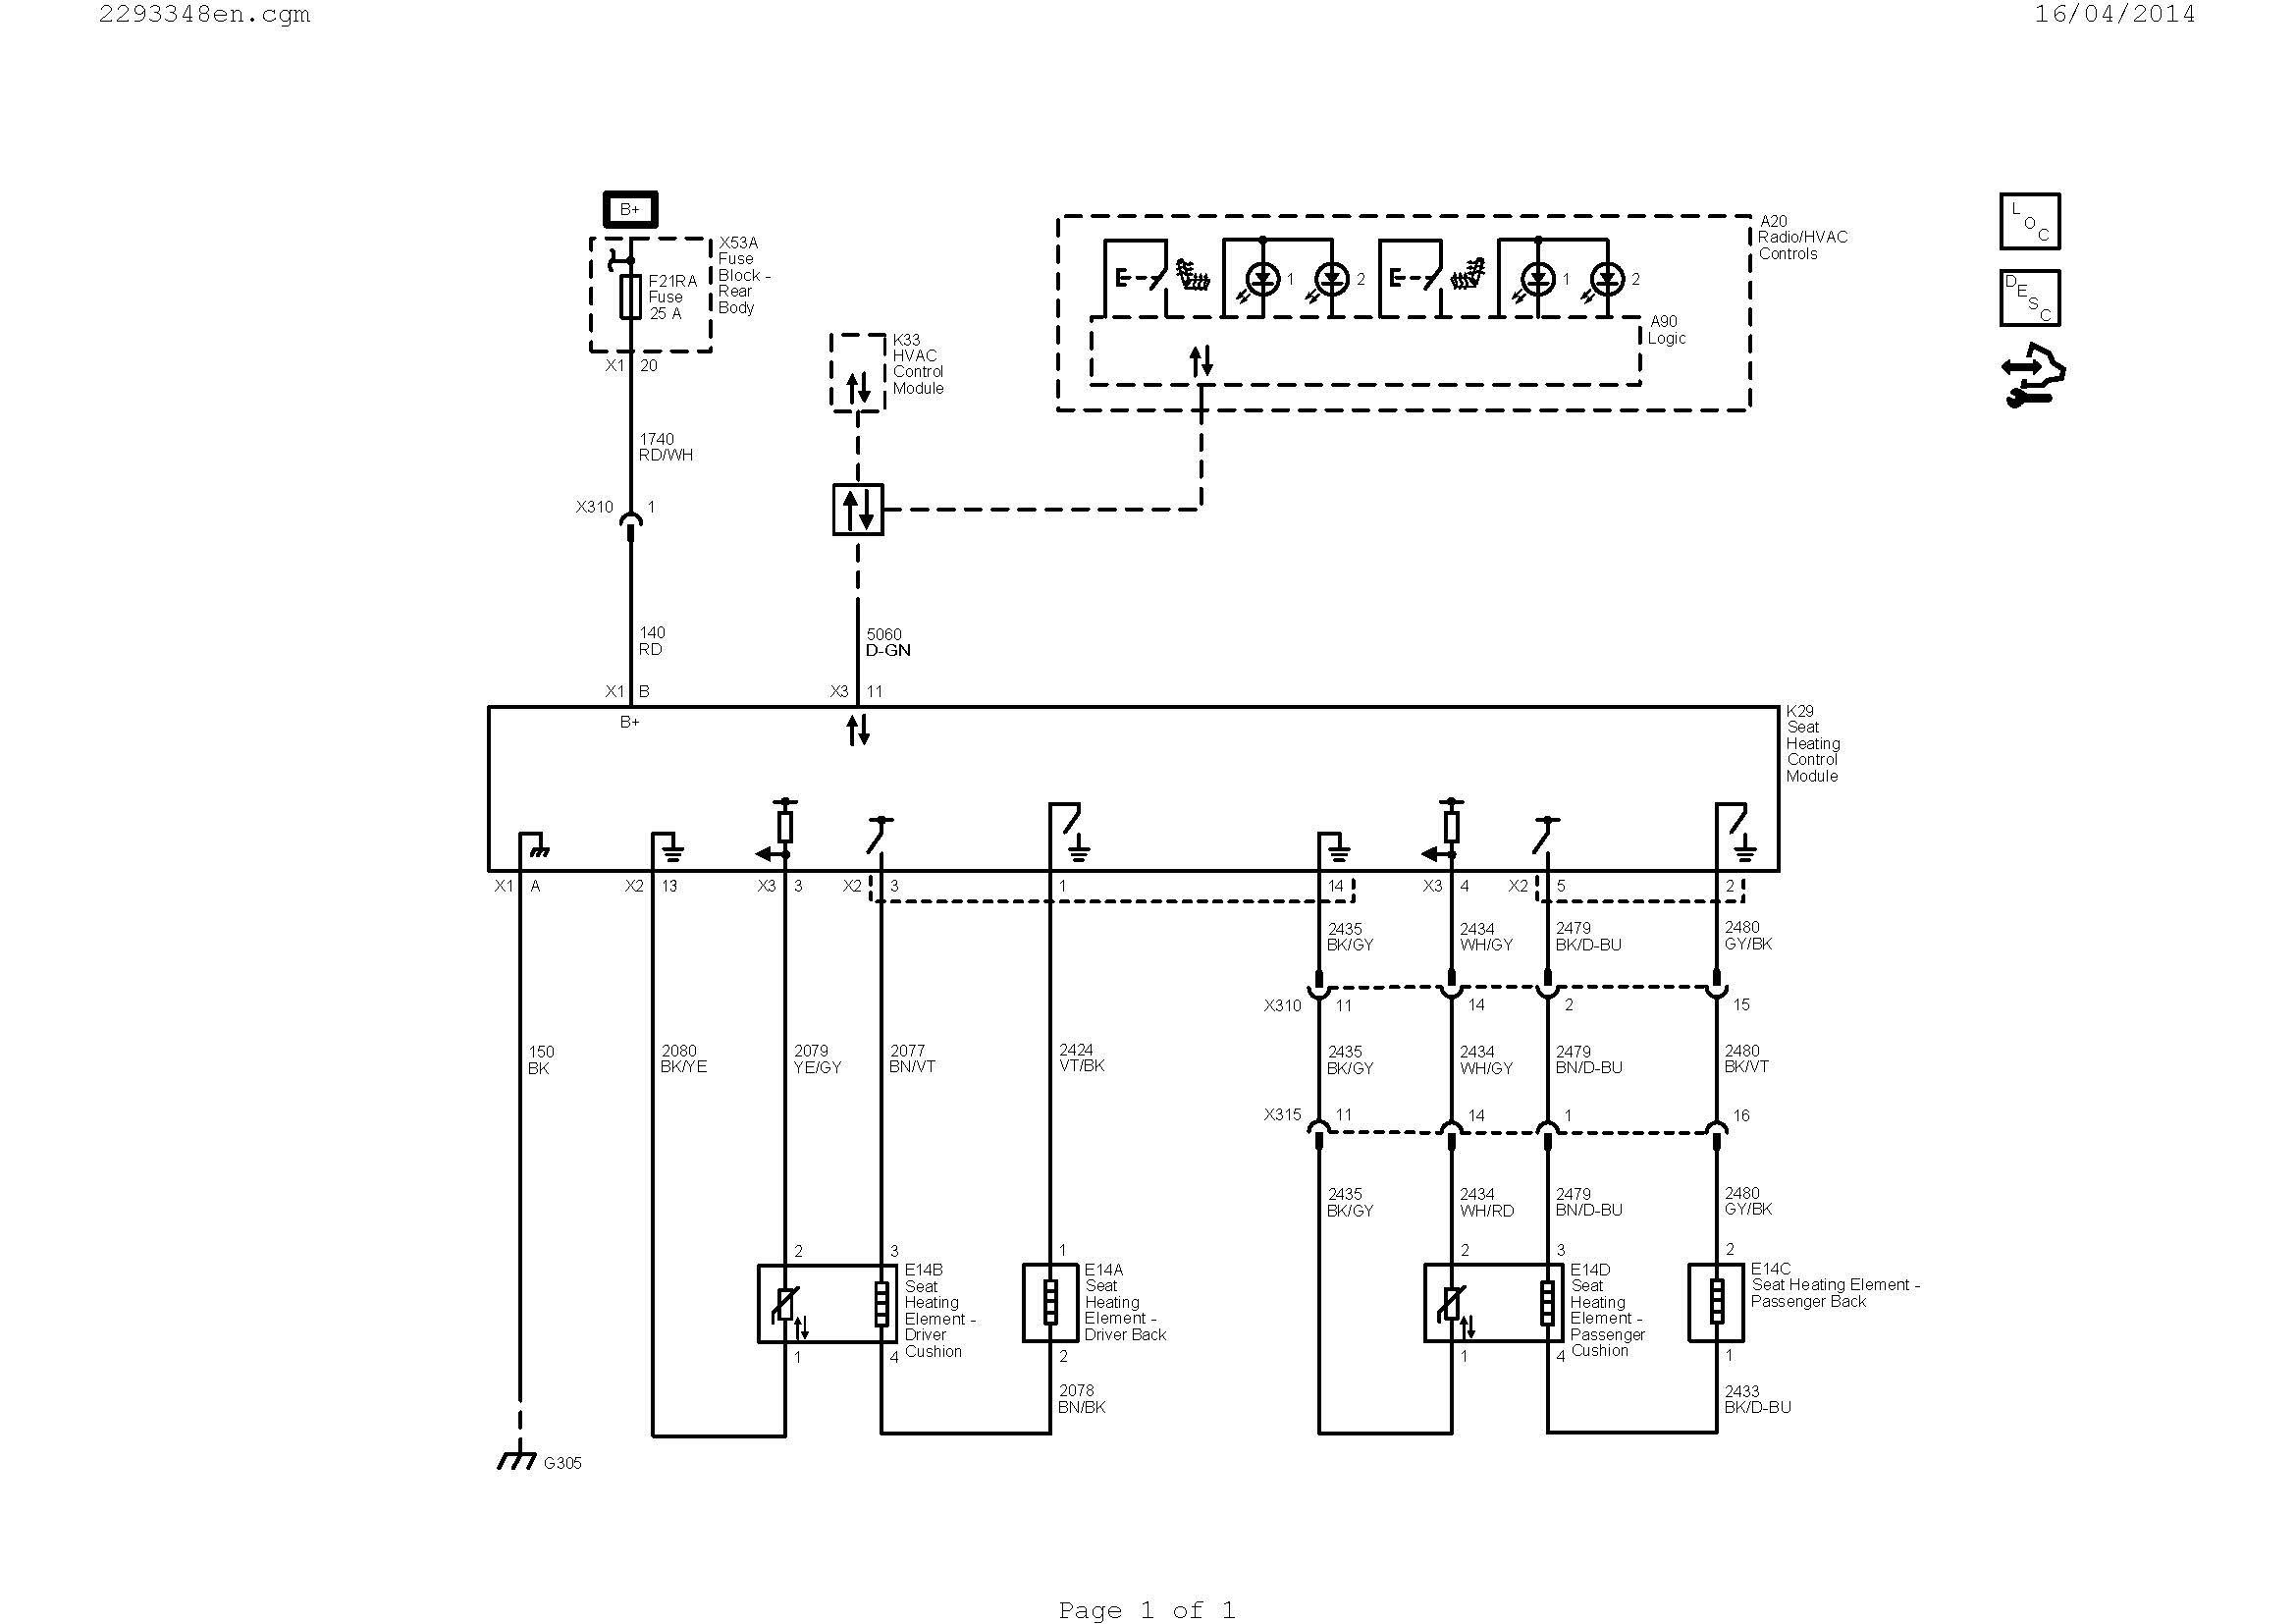 whelen siren wiring diagram Download-7 wire thermostat wiring diagram Download Wiring A Ac Thermostat Diagram New Wiring Diagram Ac 9-h